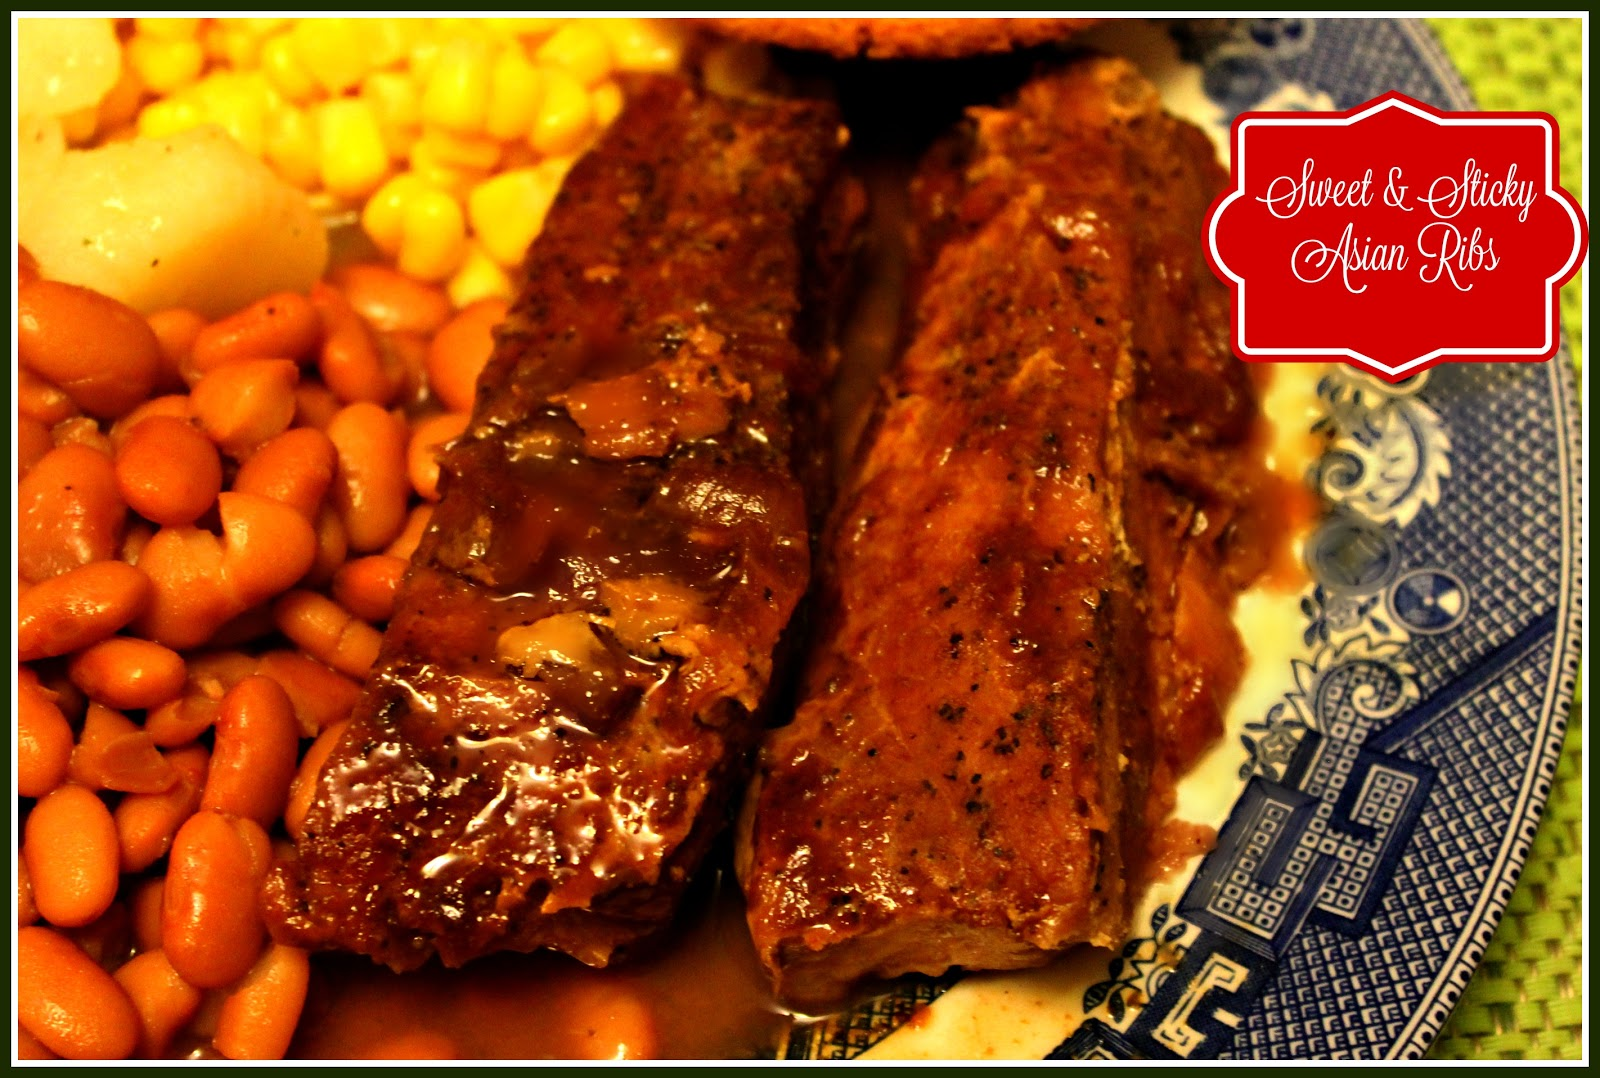 Cute and Asian country style ribs much longer